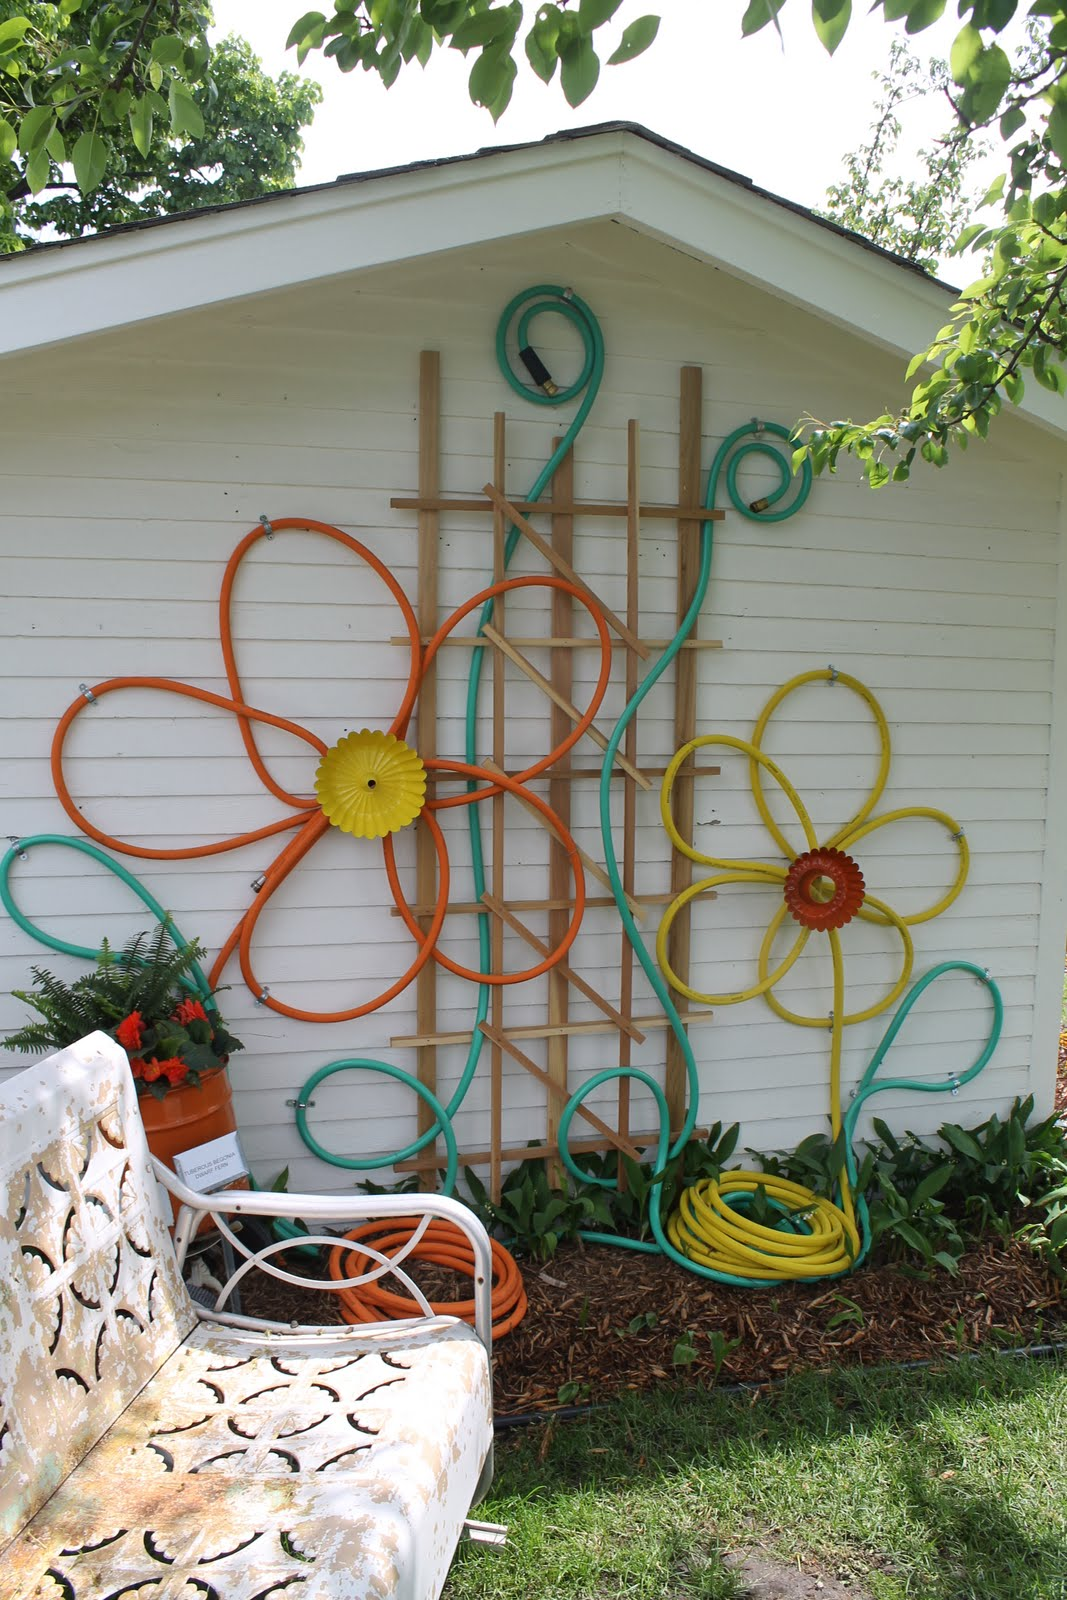 Merveilleux Make Flowers From Hoses For Outdoor House Decor